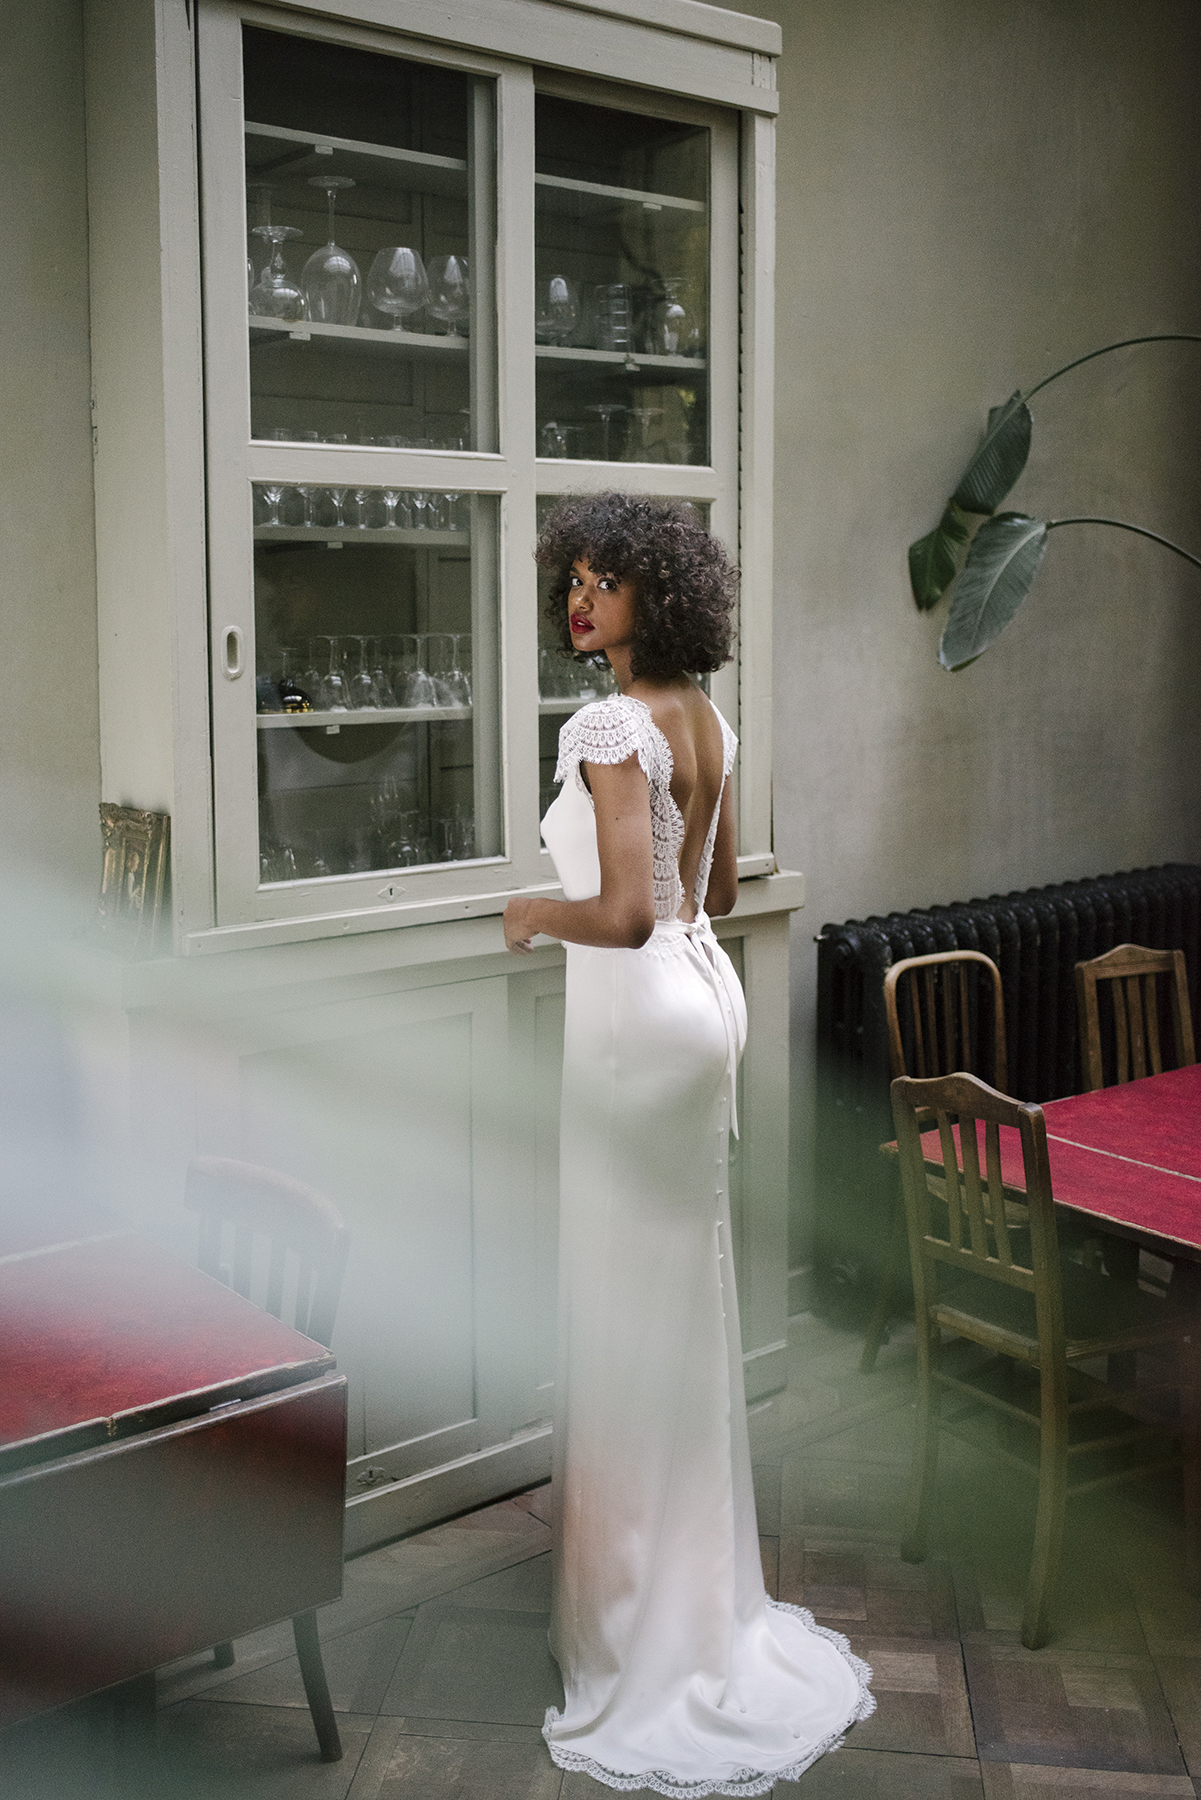 valentine-avoh-robe-mariee-dinah-dos-nu-wedding-dress-bruxelles-photo-elodie-timmermans-60.jpg